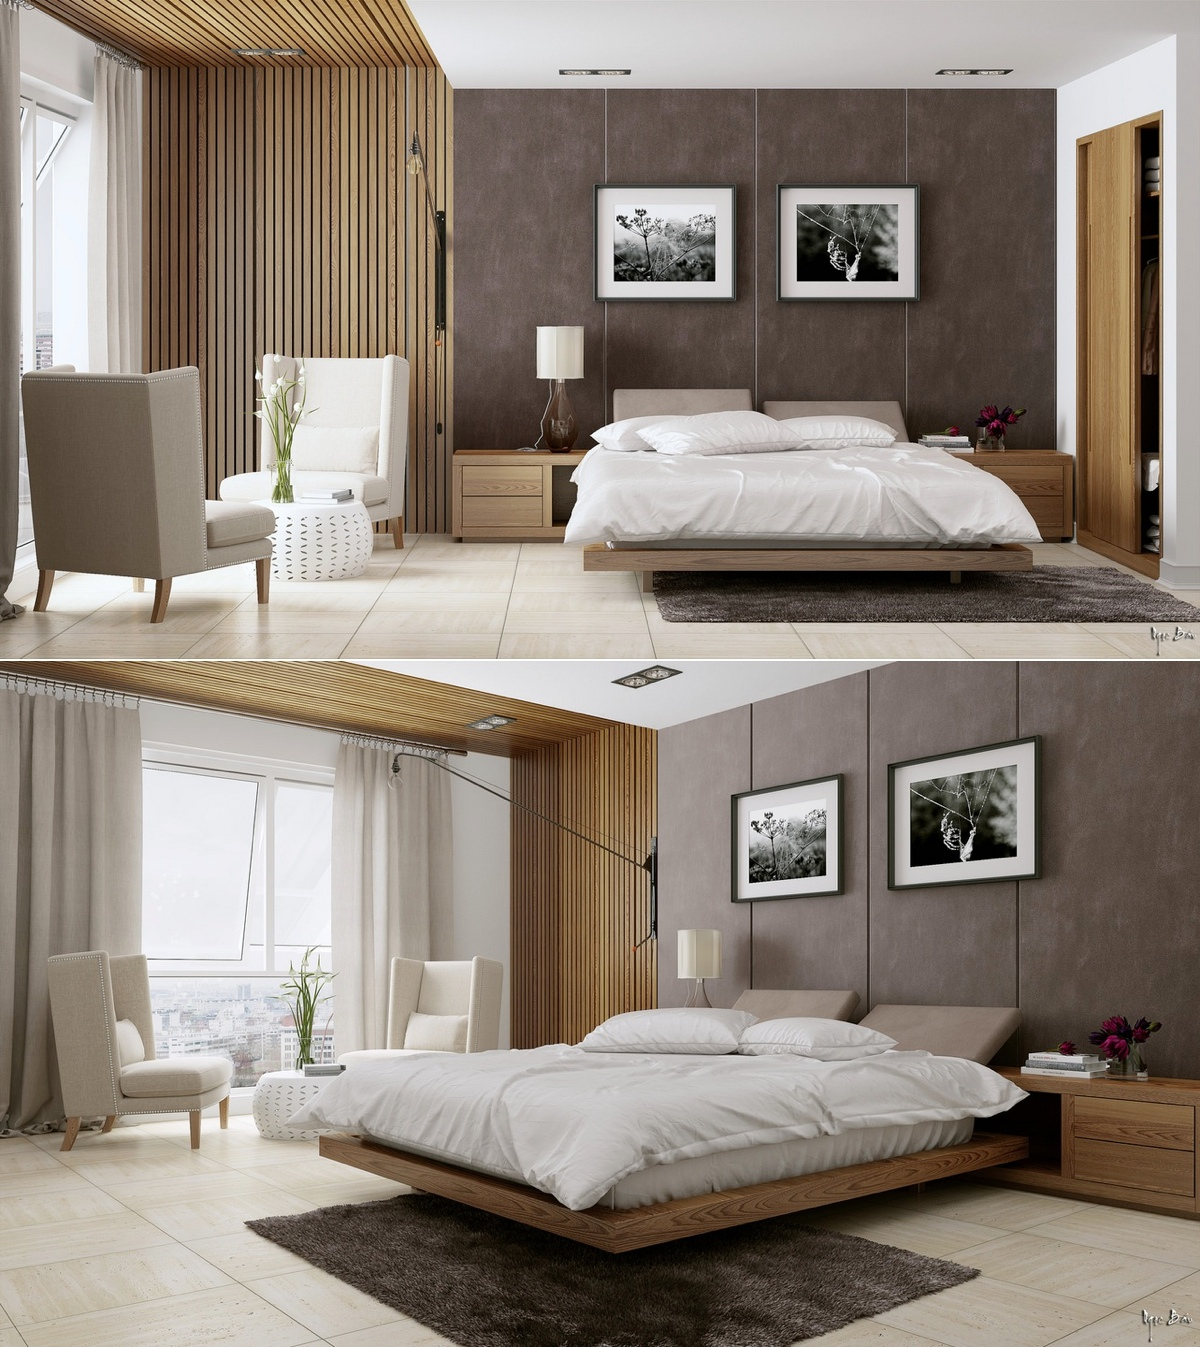 stylish bedroom designs with beautiful creative details - Interior Bedroom Design